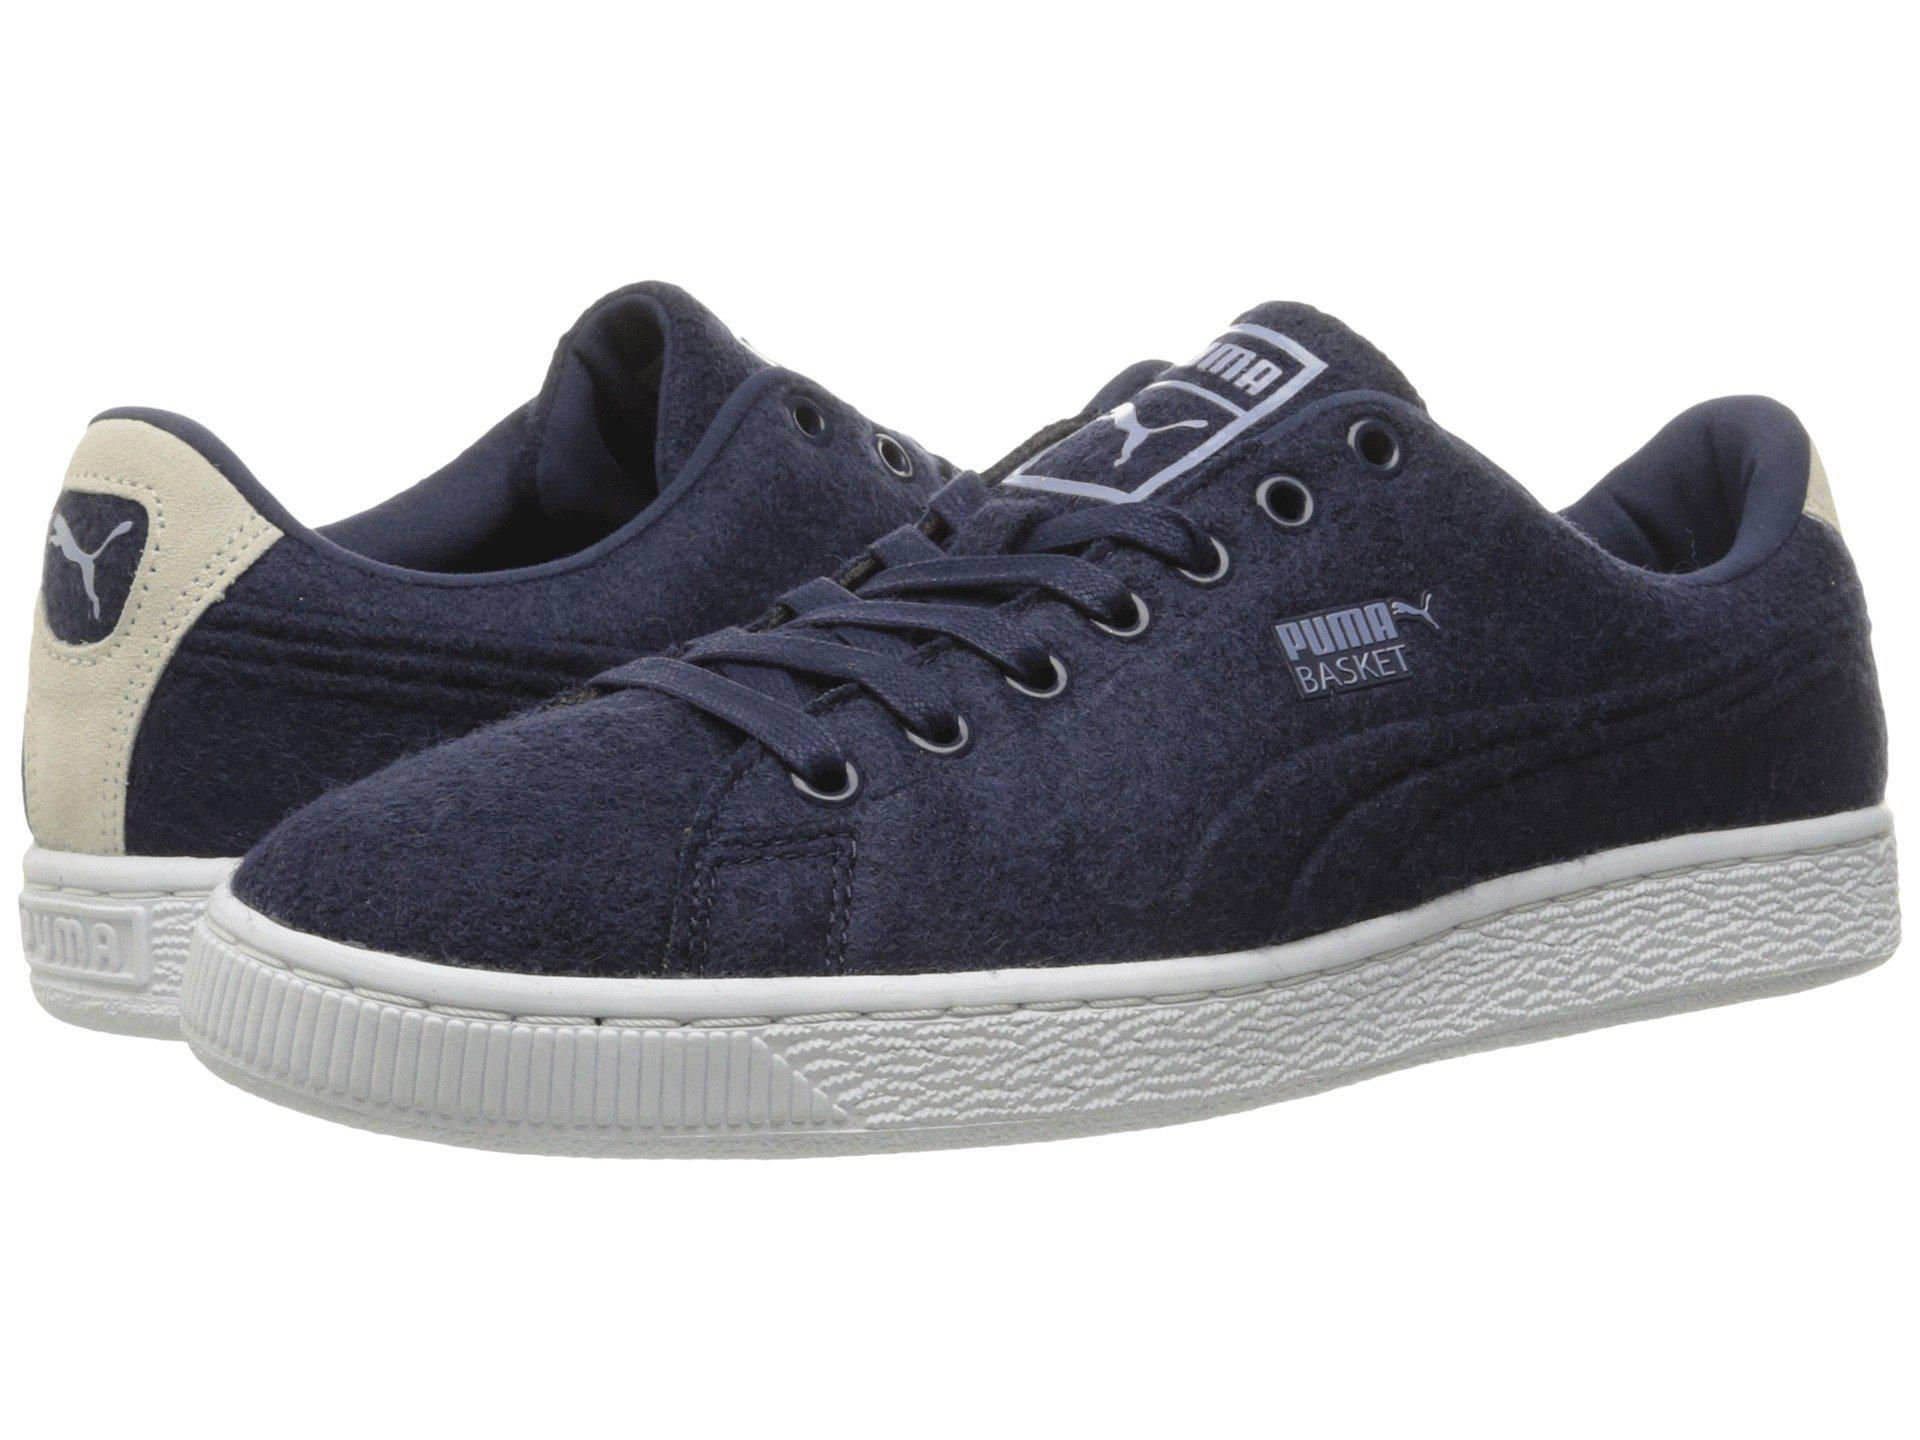 Lyst - Puma Basket Classic Embossed Wool in Blue for Men cc4bf62dc